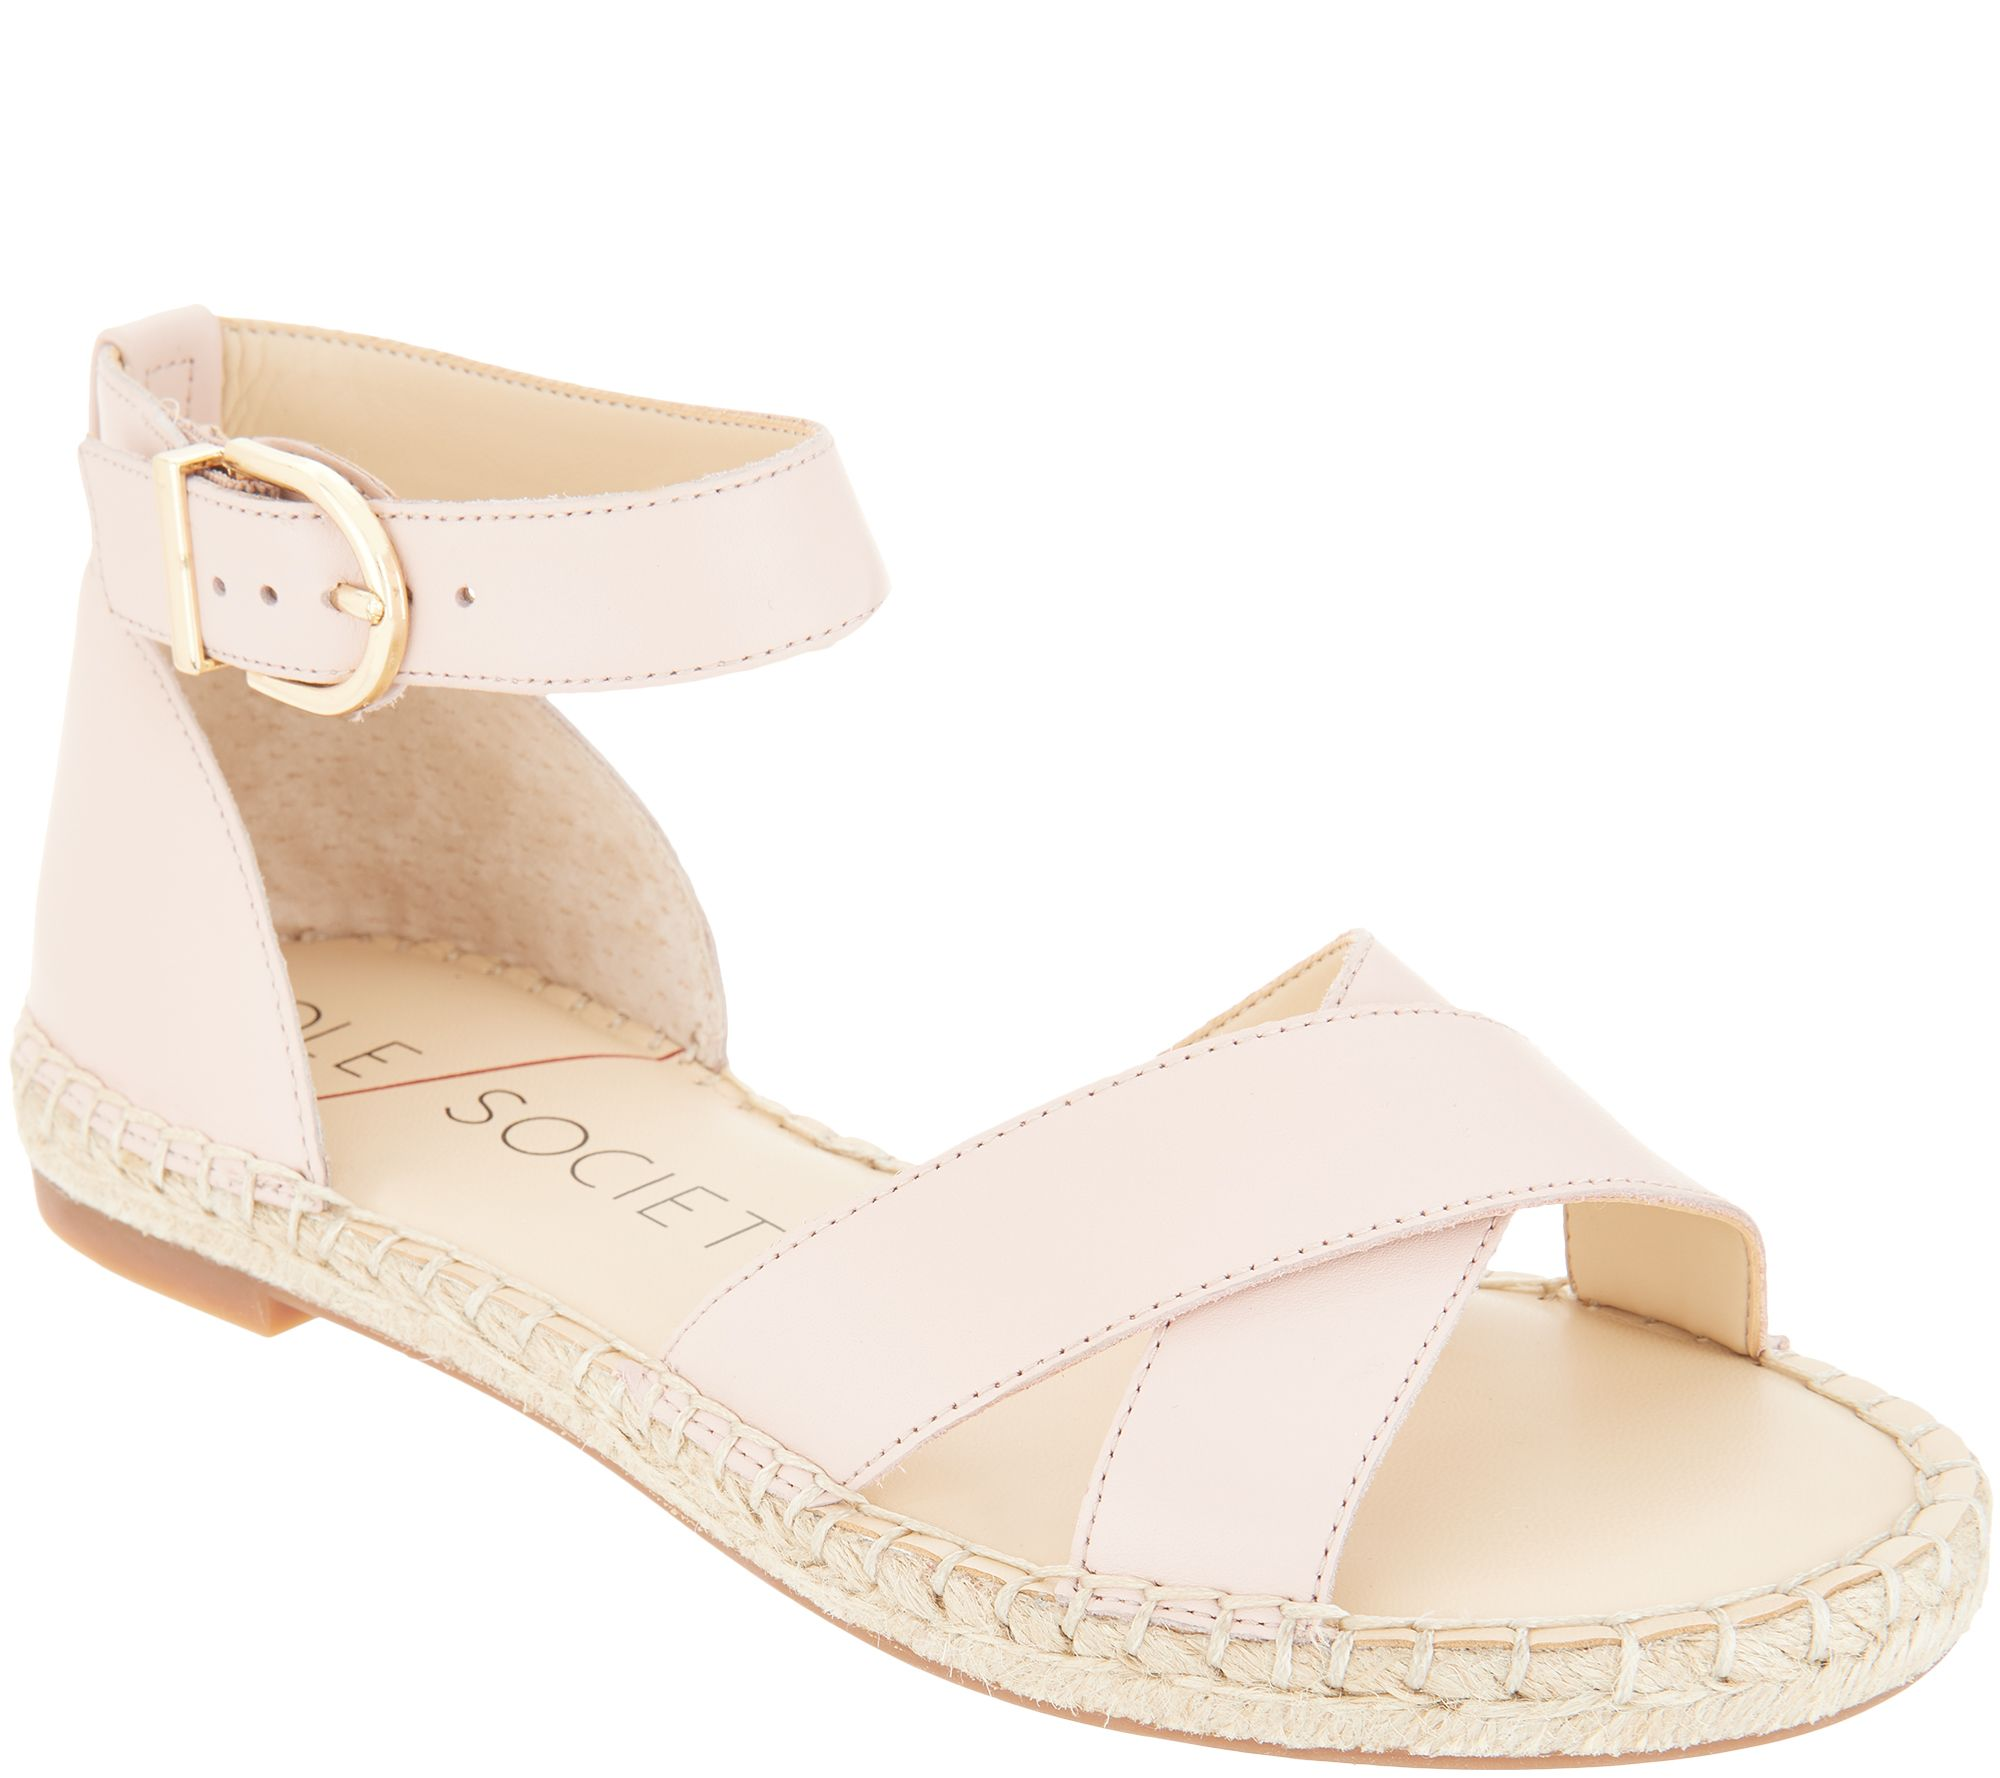 b2f75ed00732 Sole Society Leather Ankle Strap Espadrille Sandals-Saundra - Page 1 —  QVC.com